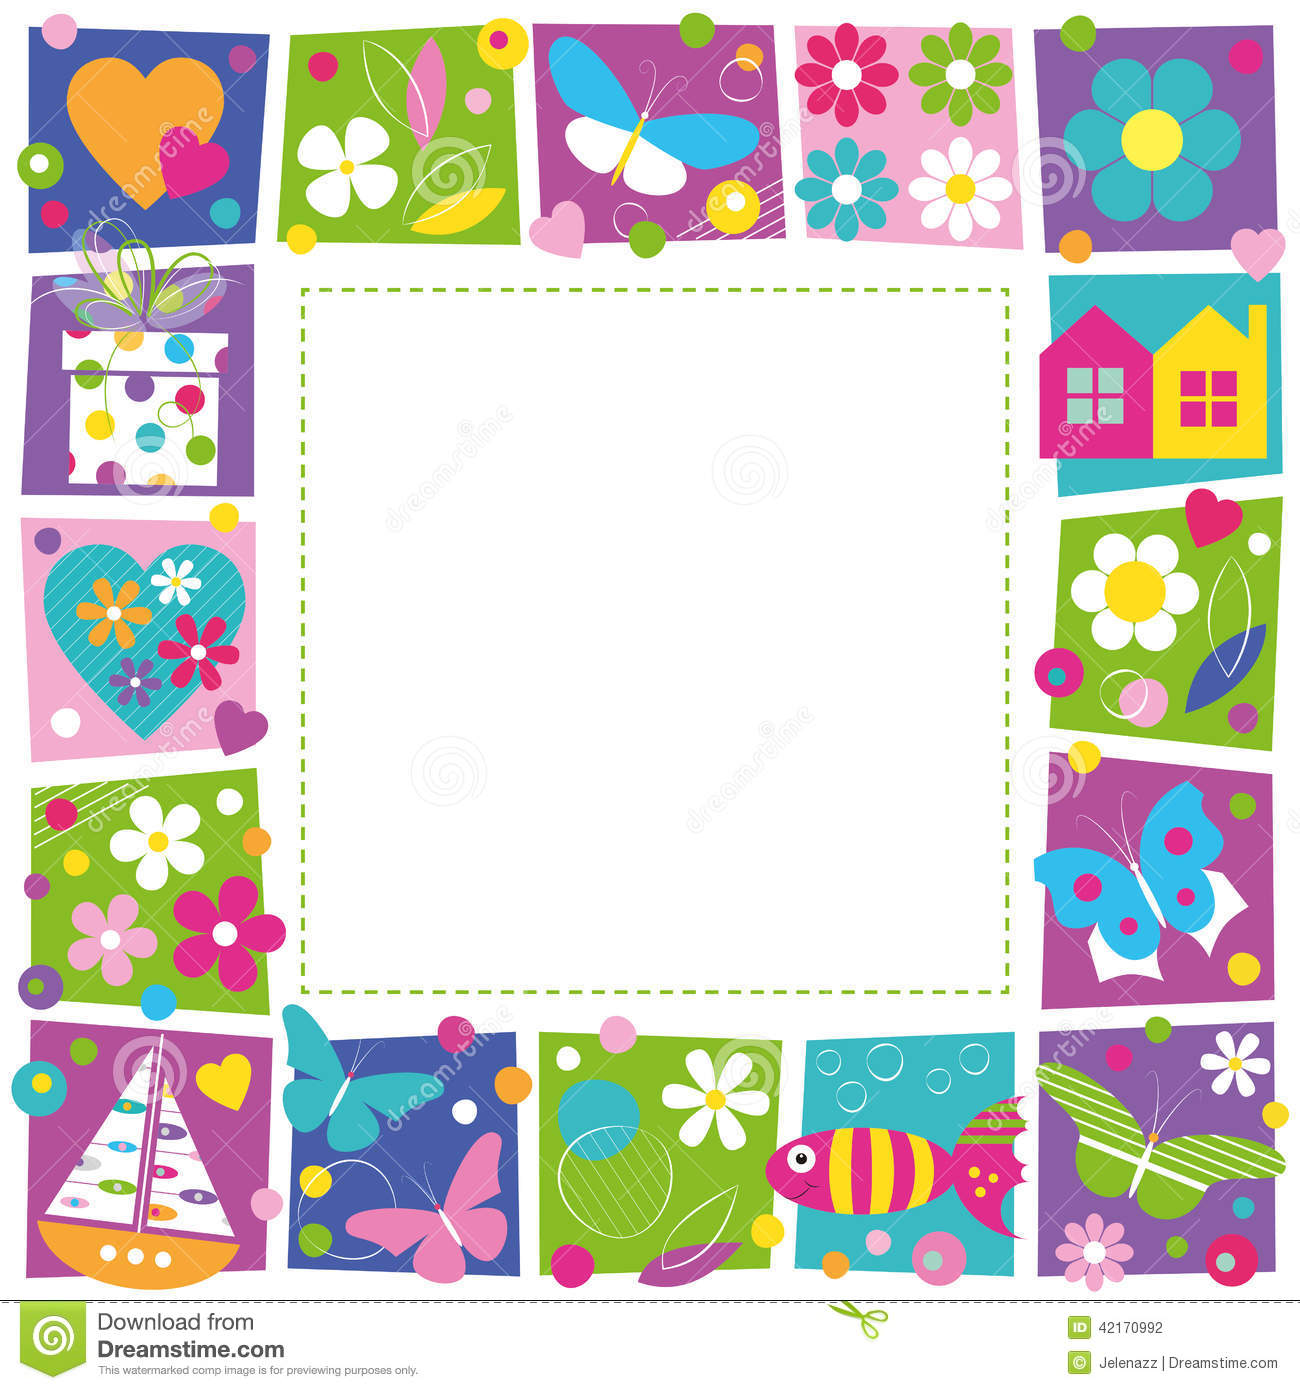 Cute Butterfly Designs Border